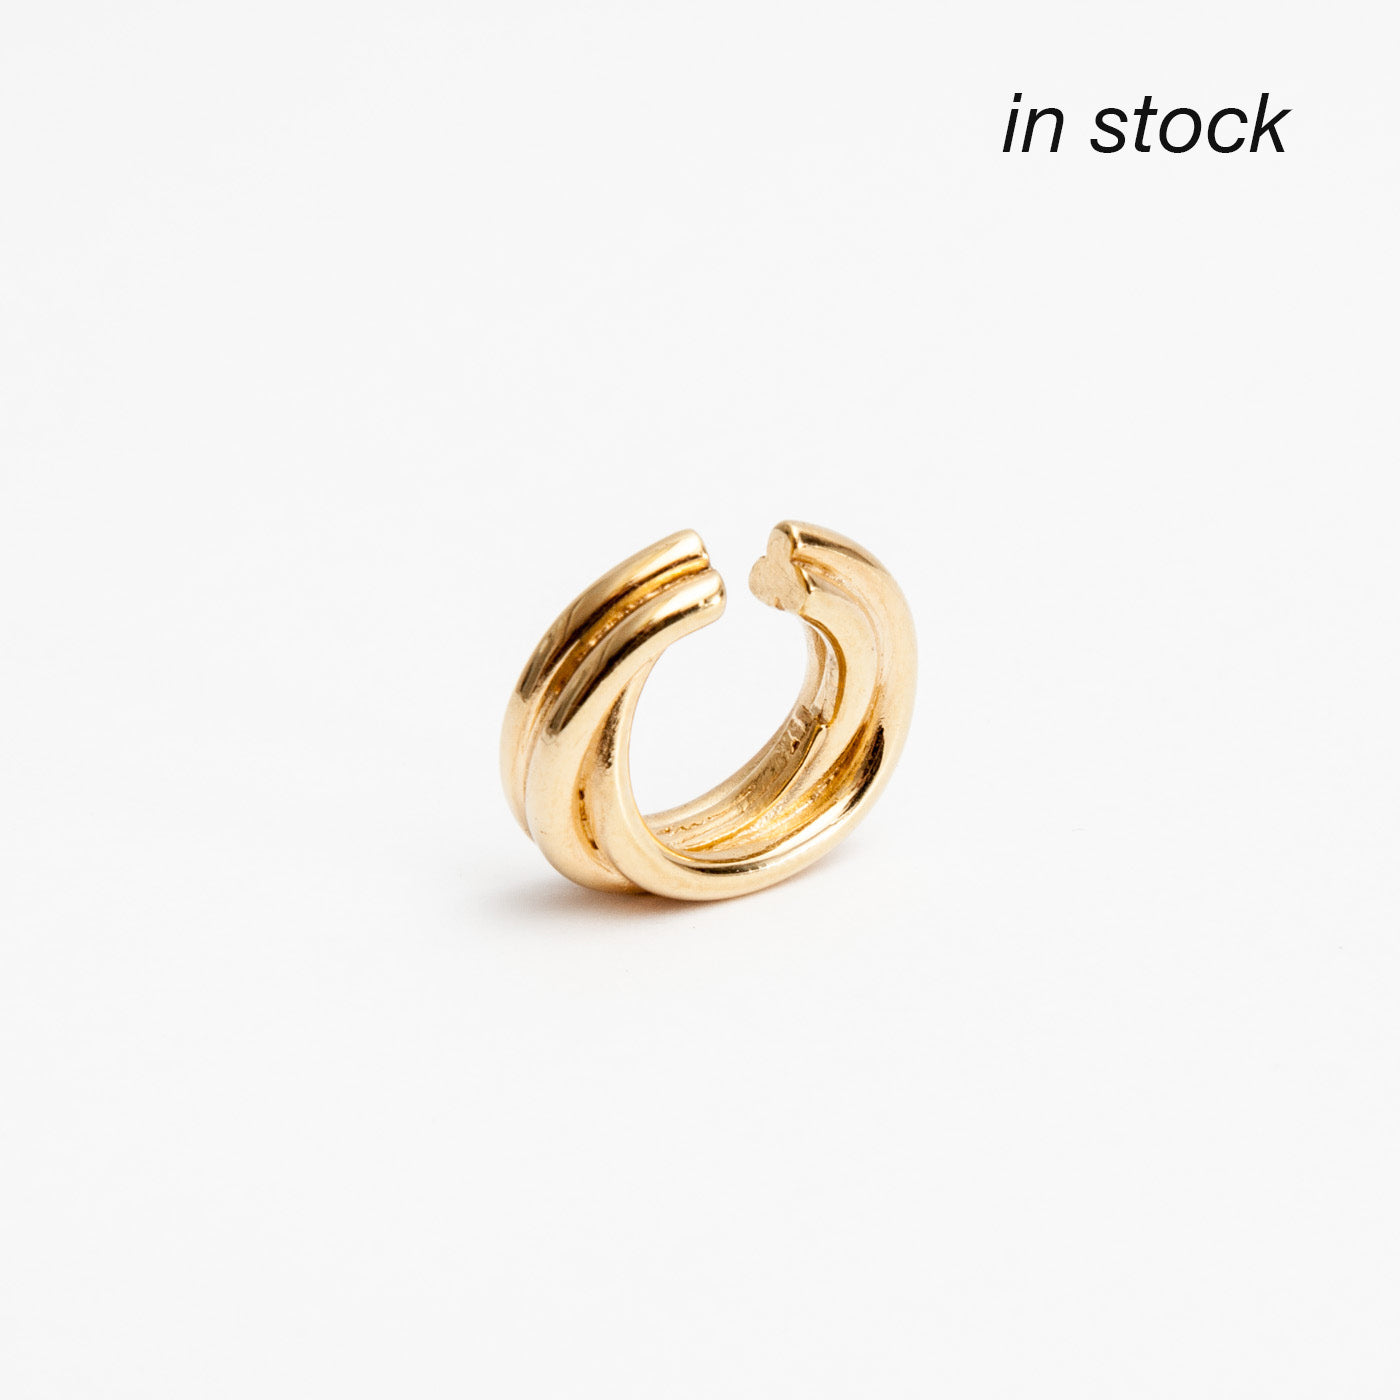 ear cuff golden flow silver product view innan jewellery in stock